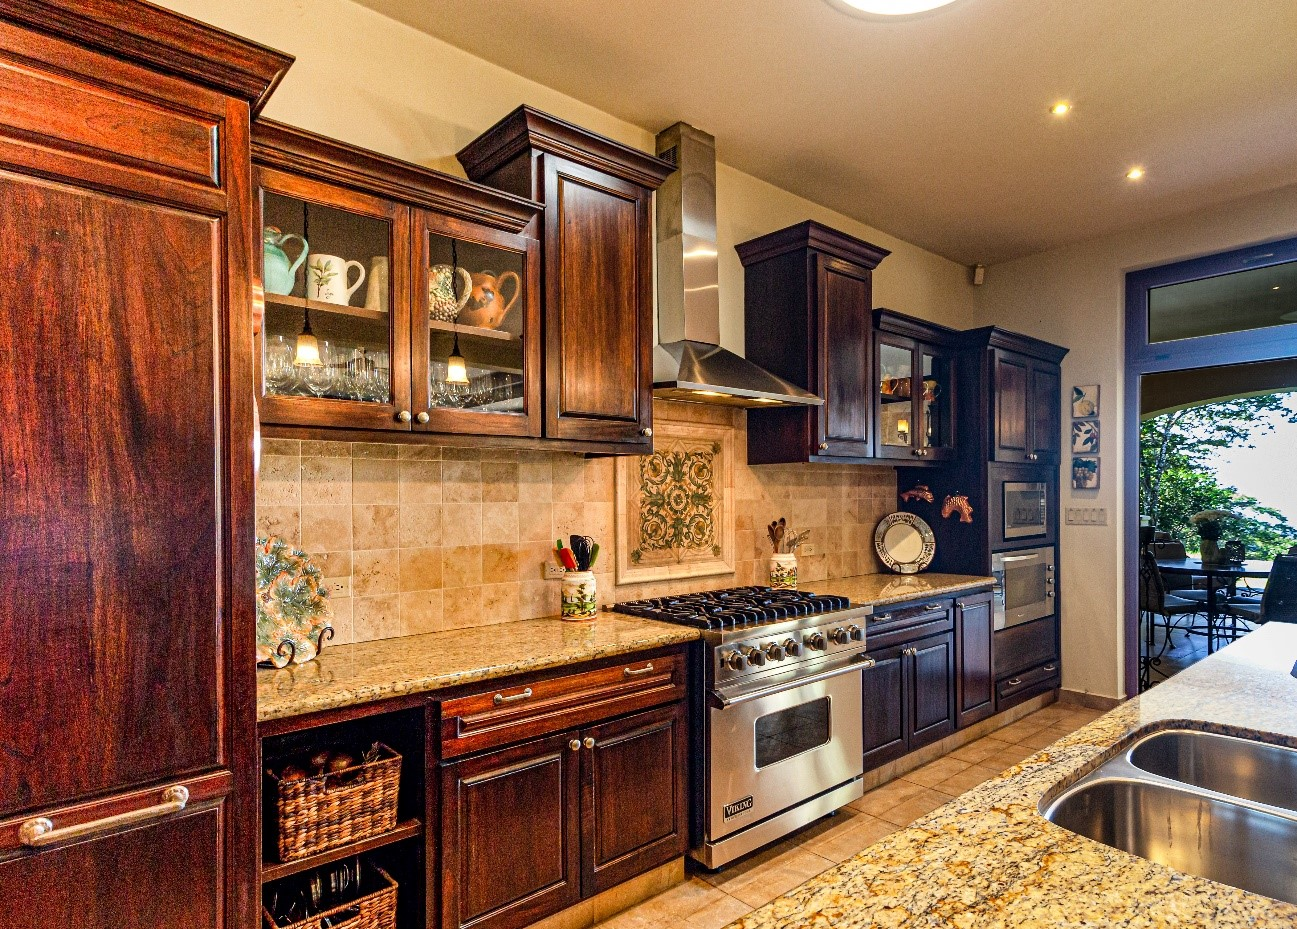 How New Kitchen Cabinets Enhance the Entire Kitchen